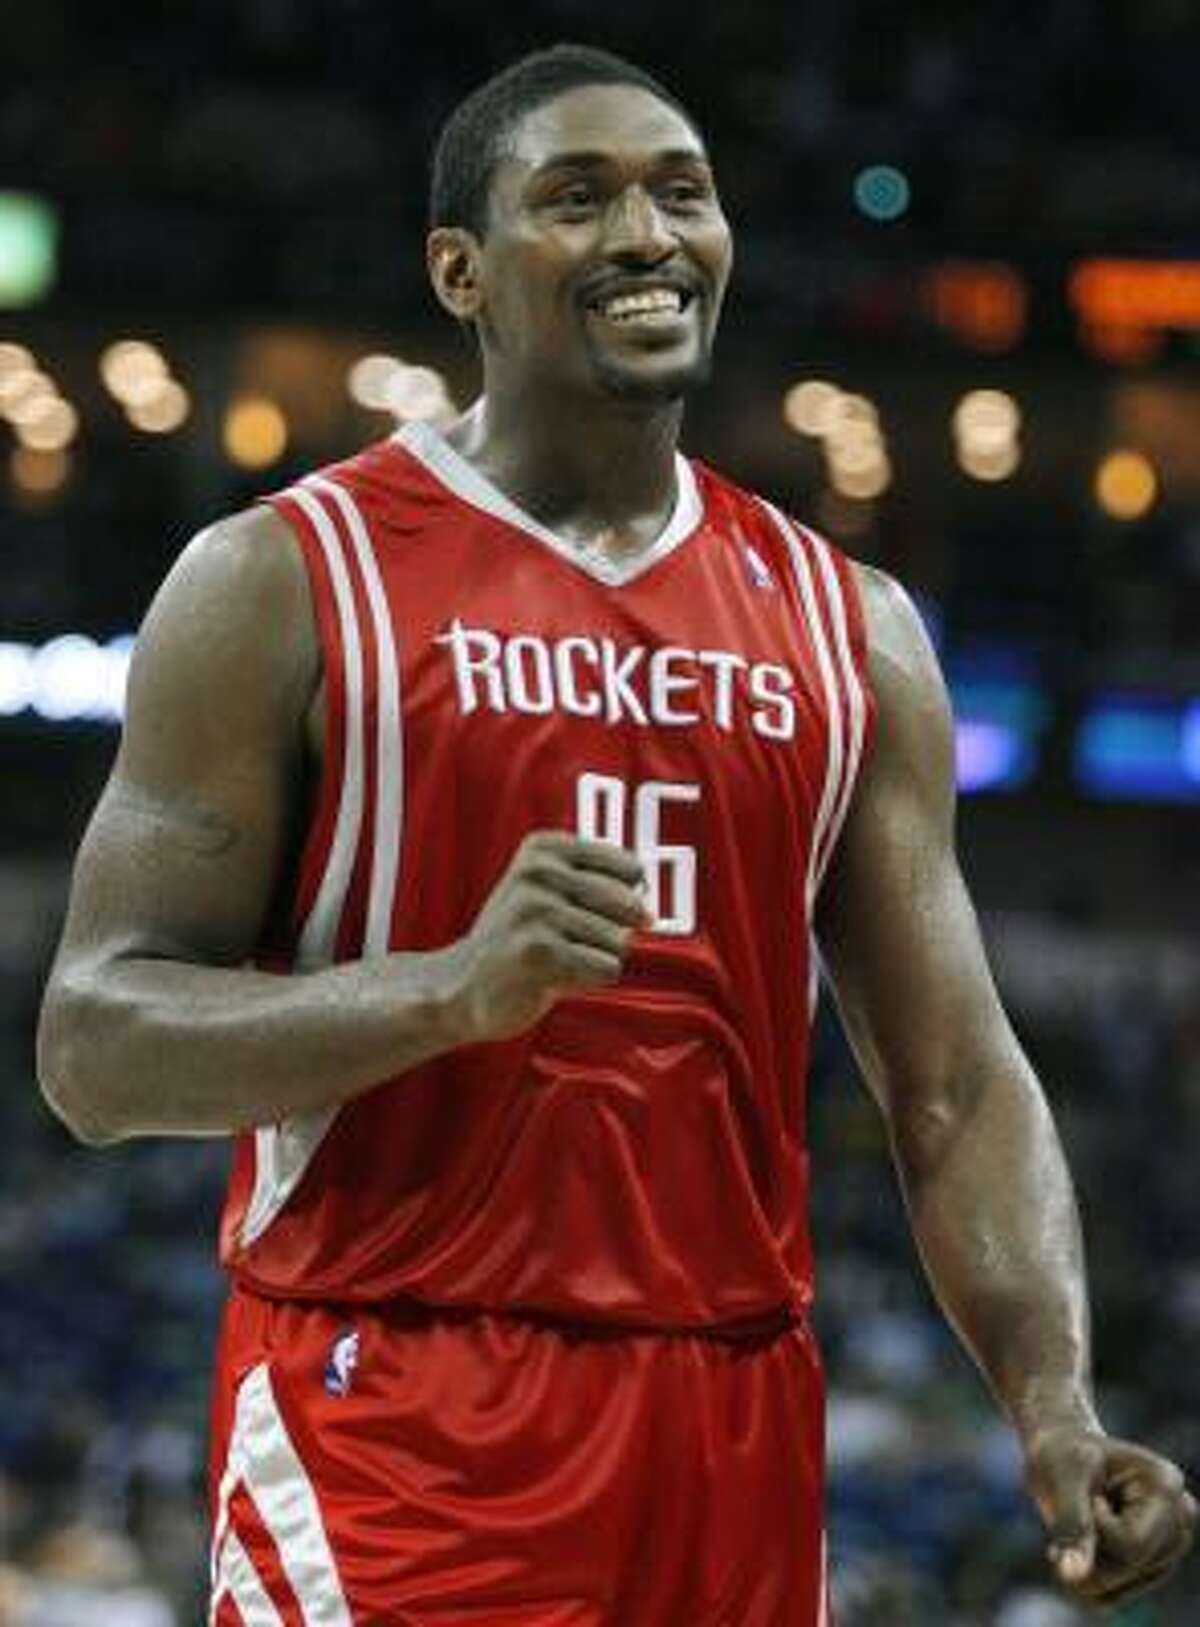 Rockets forward Ron Artest smiles after a play during the second half . Artest shook off a poor-shooting start to score 18 points in Monday's win against the Hornets.